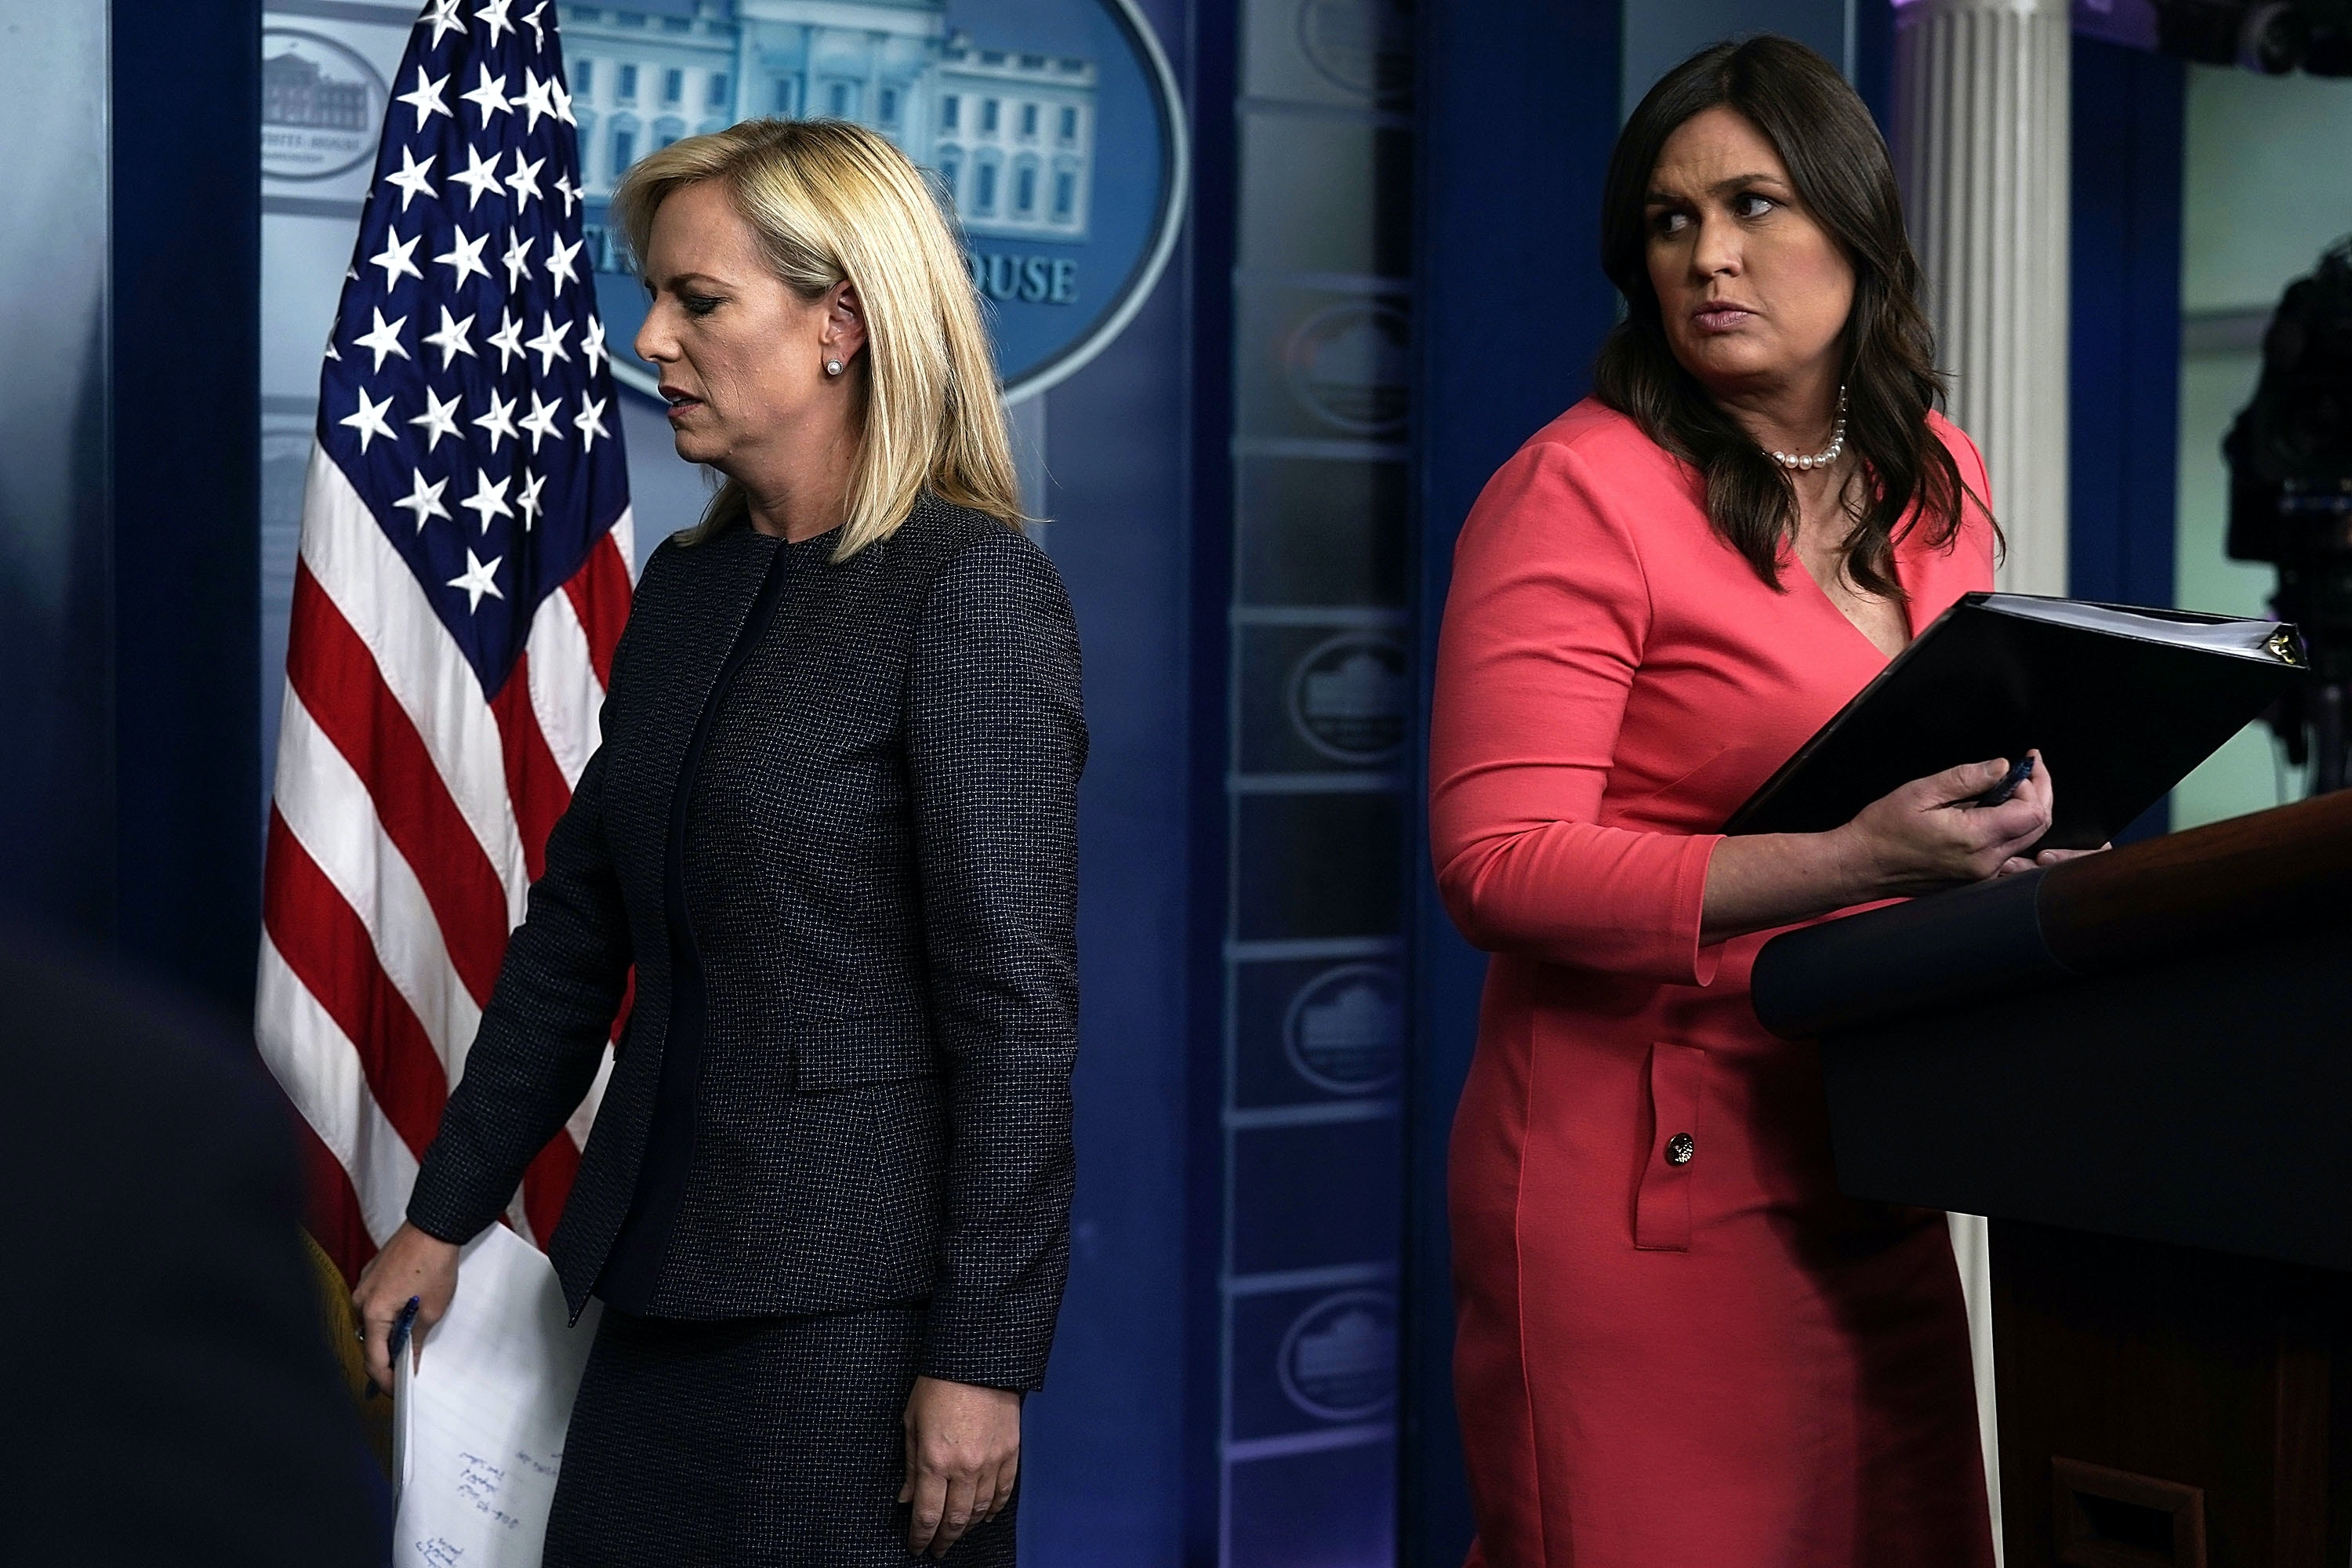 WASHINGTON, DC - JUNE 18:  U.S. Secretary of Homeland Security Kirstjen Nielsen (L) leaves after she briefed members of the press as White House Press Secretary Sarah Sanders (R) looks on during a White House daily news briefing at the James Brady Press Briefing Room of the White House June 18, 2018 in Washington, DC. Nielsen joined White House Press Secretary Sarah Sanders at the daily news briefing to answer questions from members of the White House Press Corps.   (Photo by Alex Wong/Getty Images)